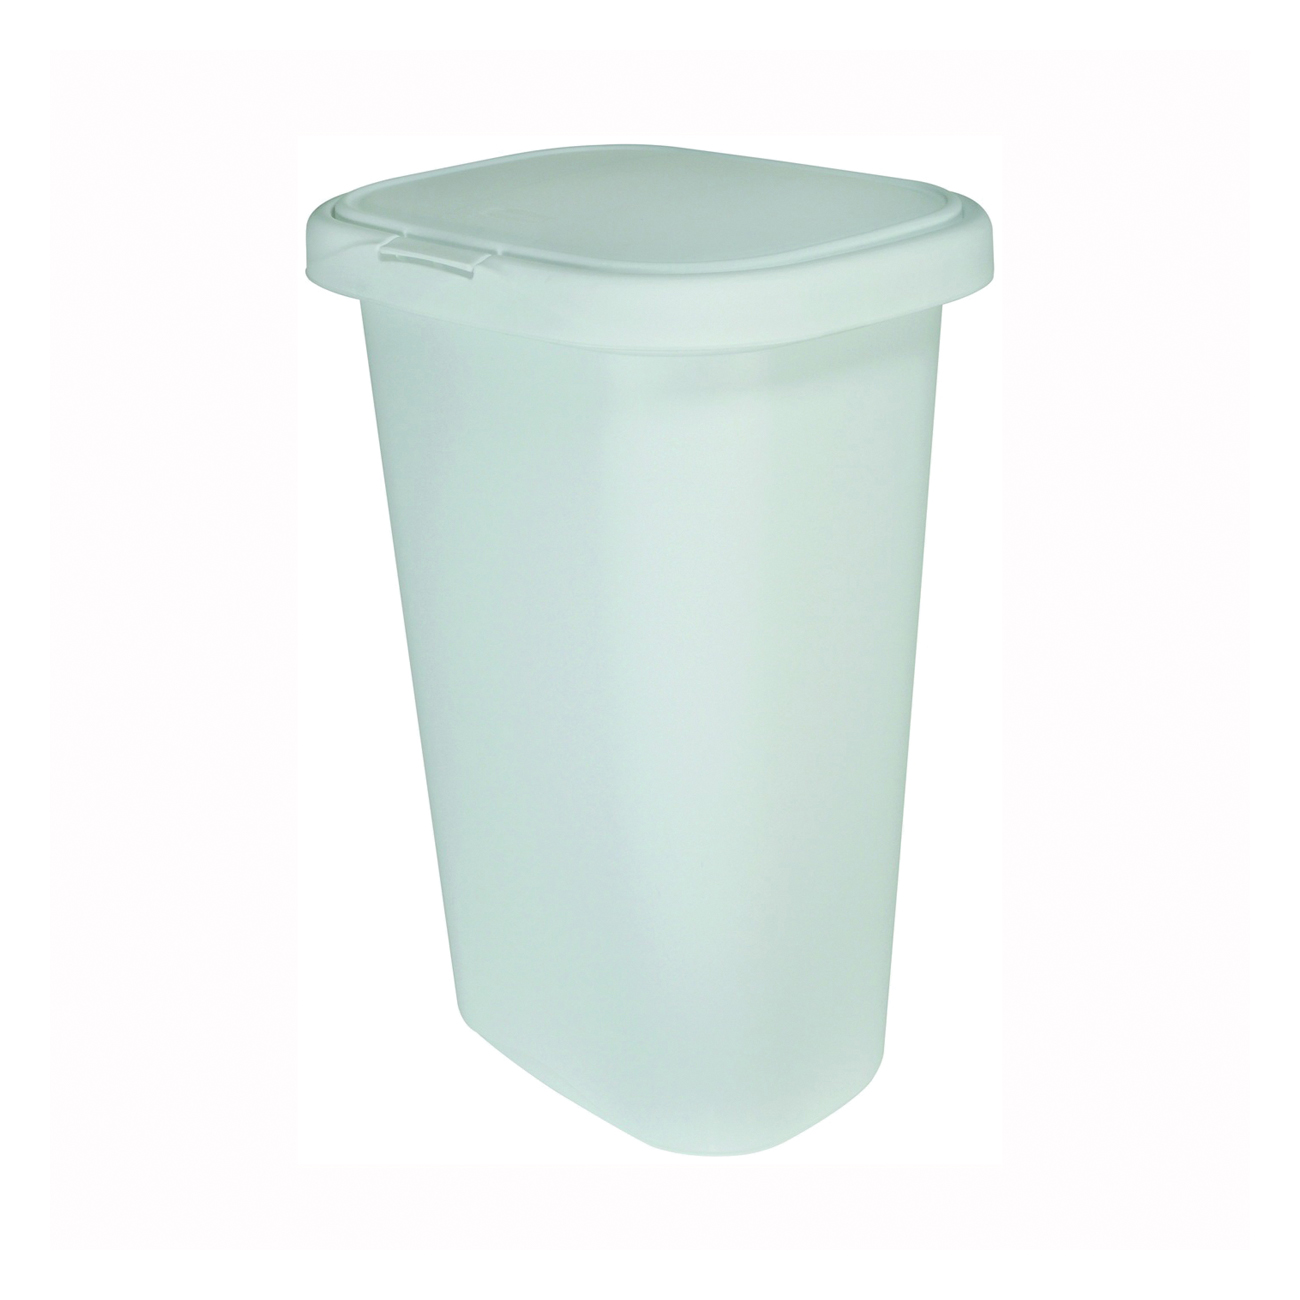 Picture of Rubbermaid 5L58 Series FG5L5806WHT Waste Can, 52 qt Capacity, Plastic, White, 14.89 in W, 17-1/4 in D, 25-1/2 in H